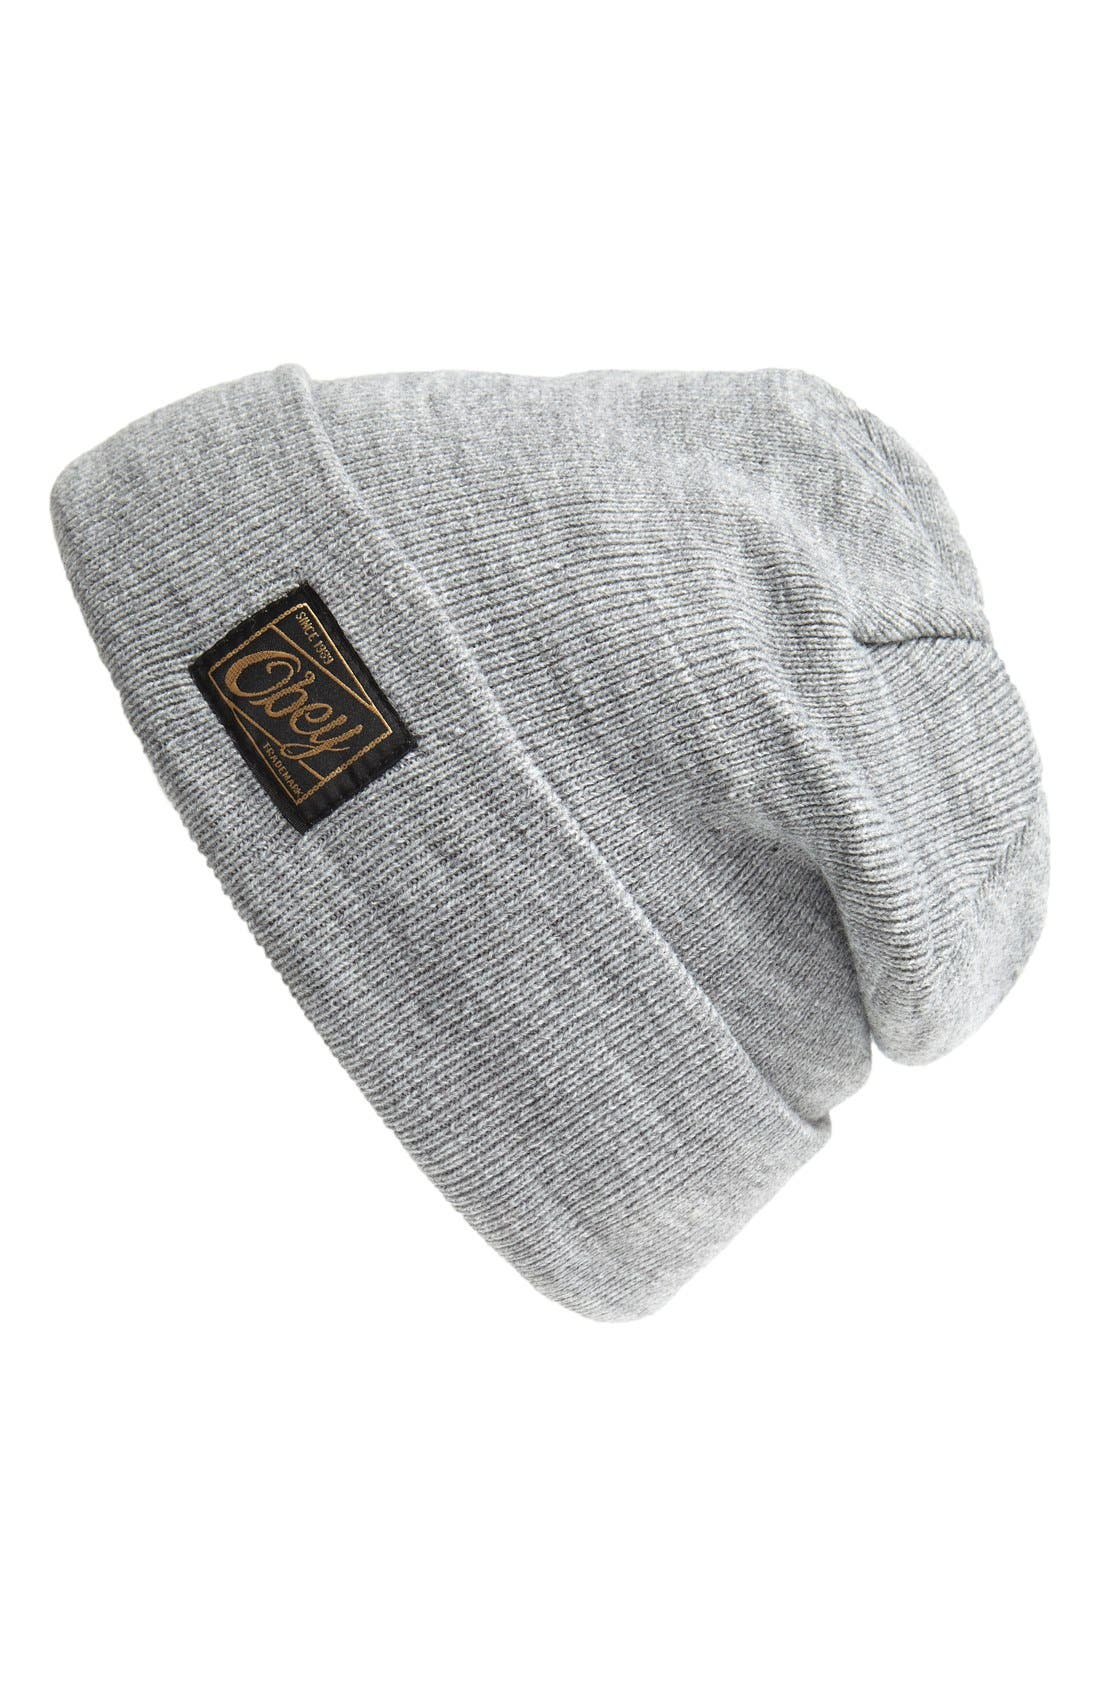 Alternate Image 1 Selected - Obey 'Jobber' Beanie